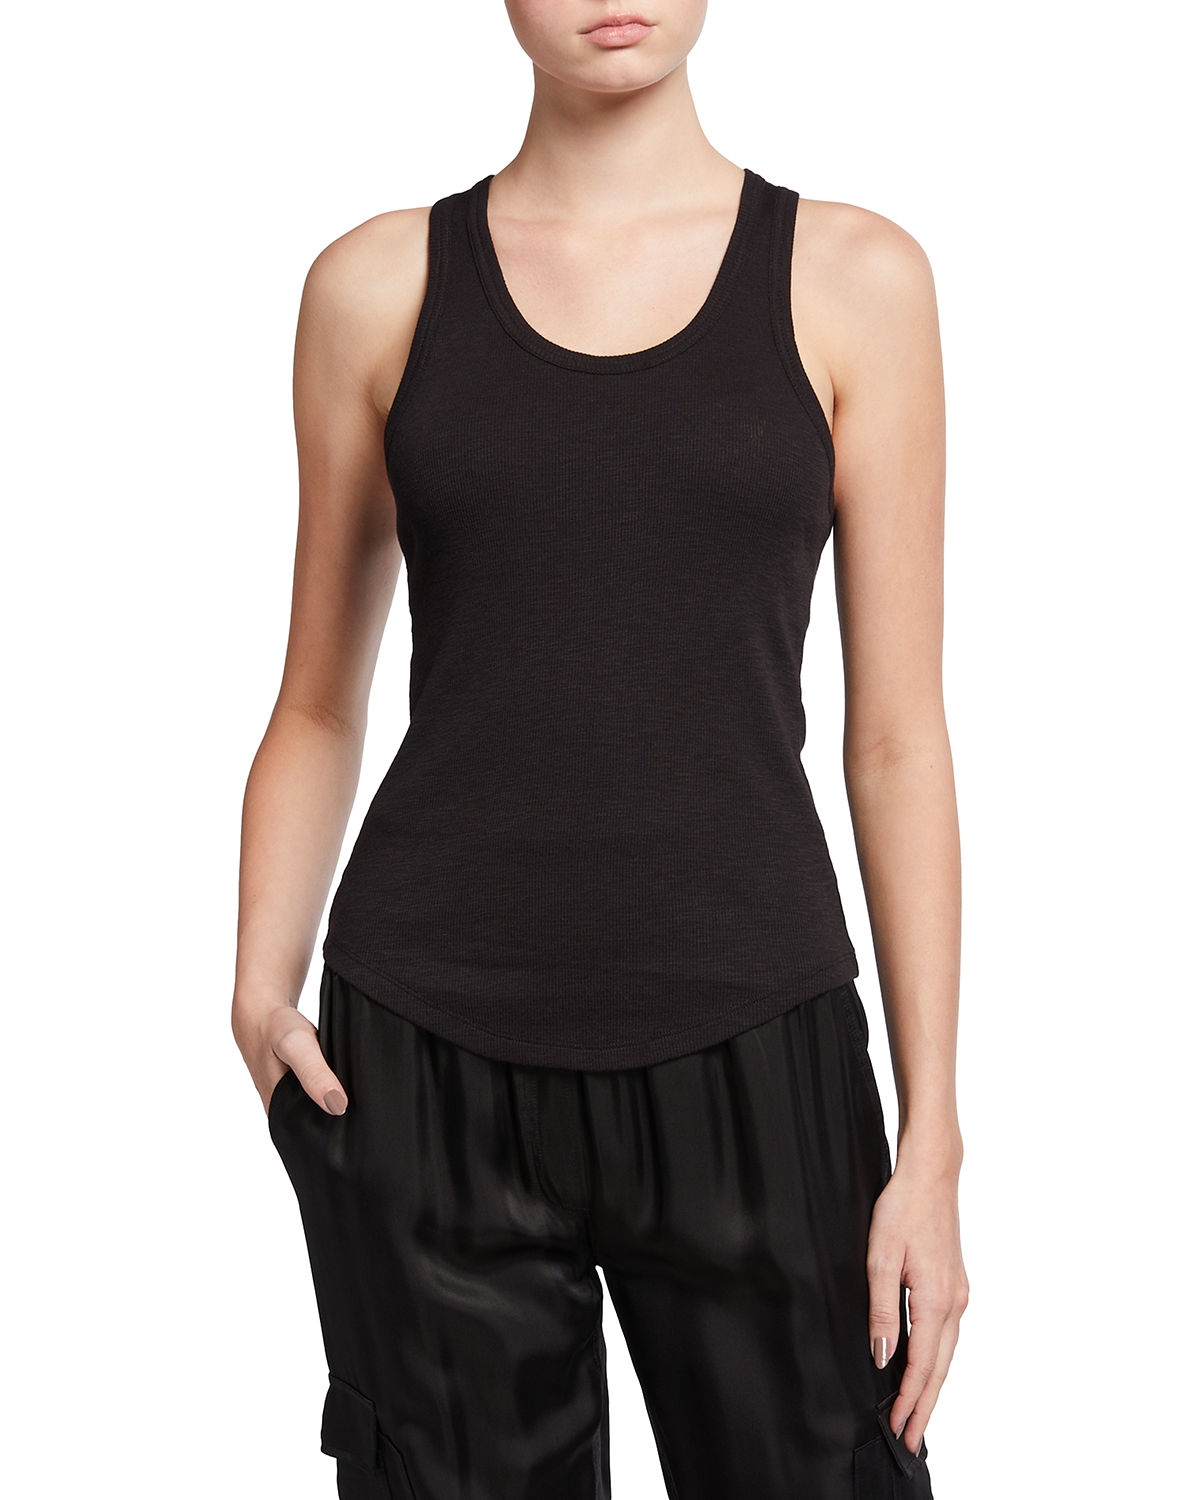 The Upside FRANKIE RIBBED TANK TOP